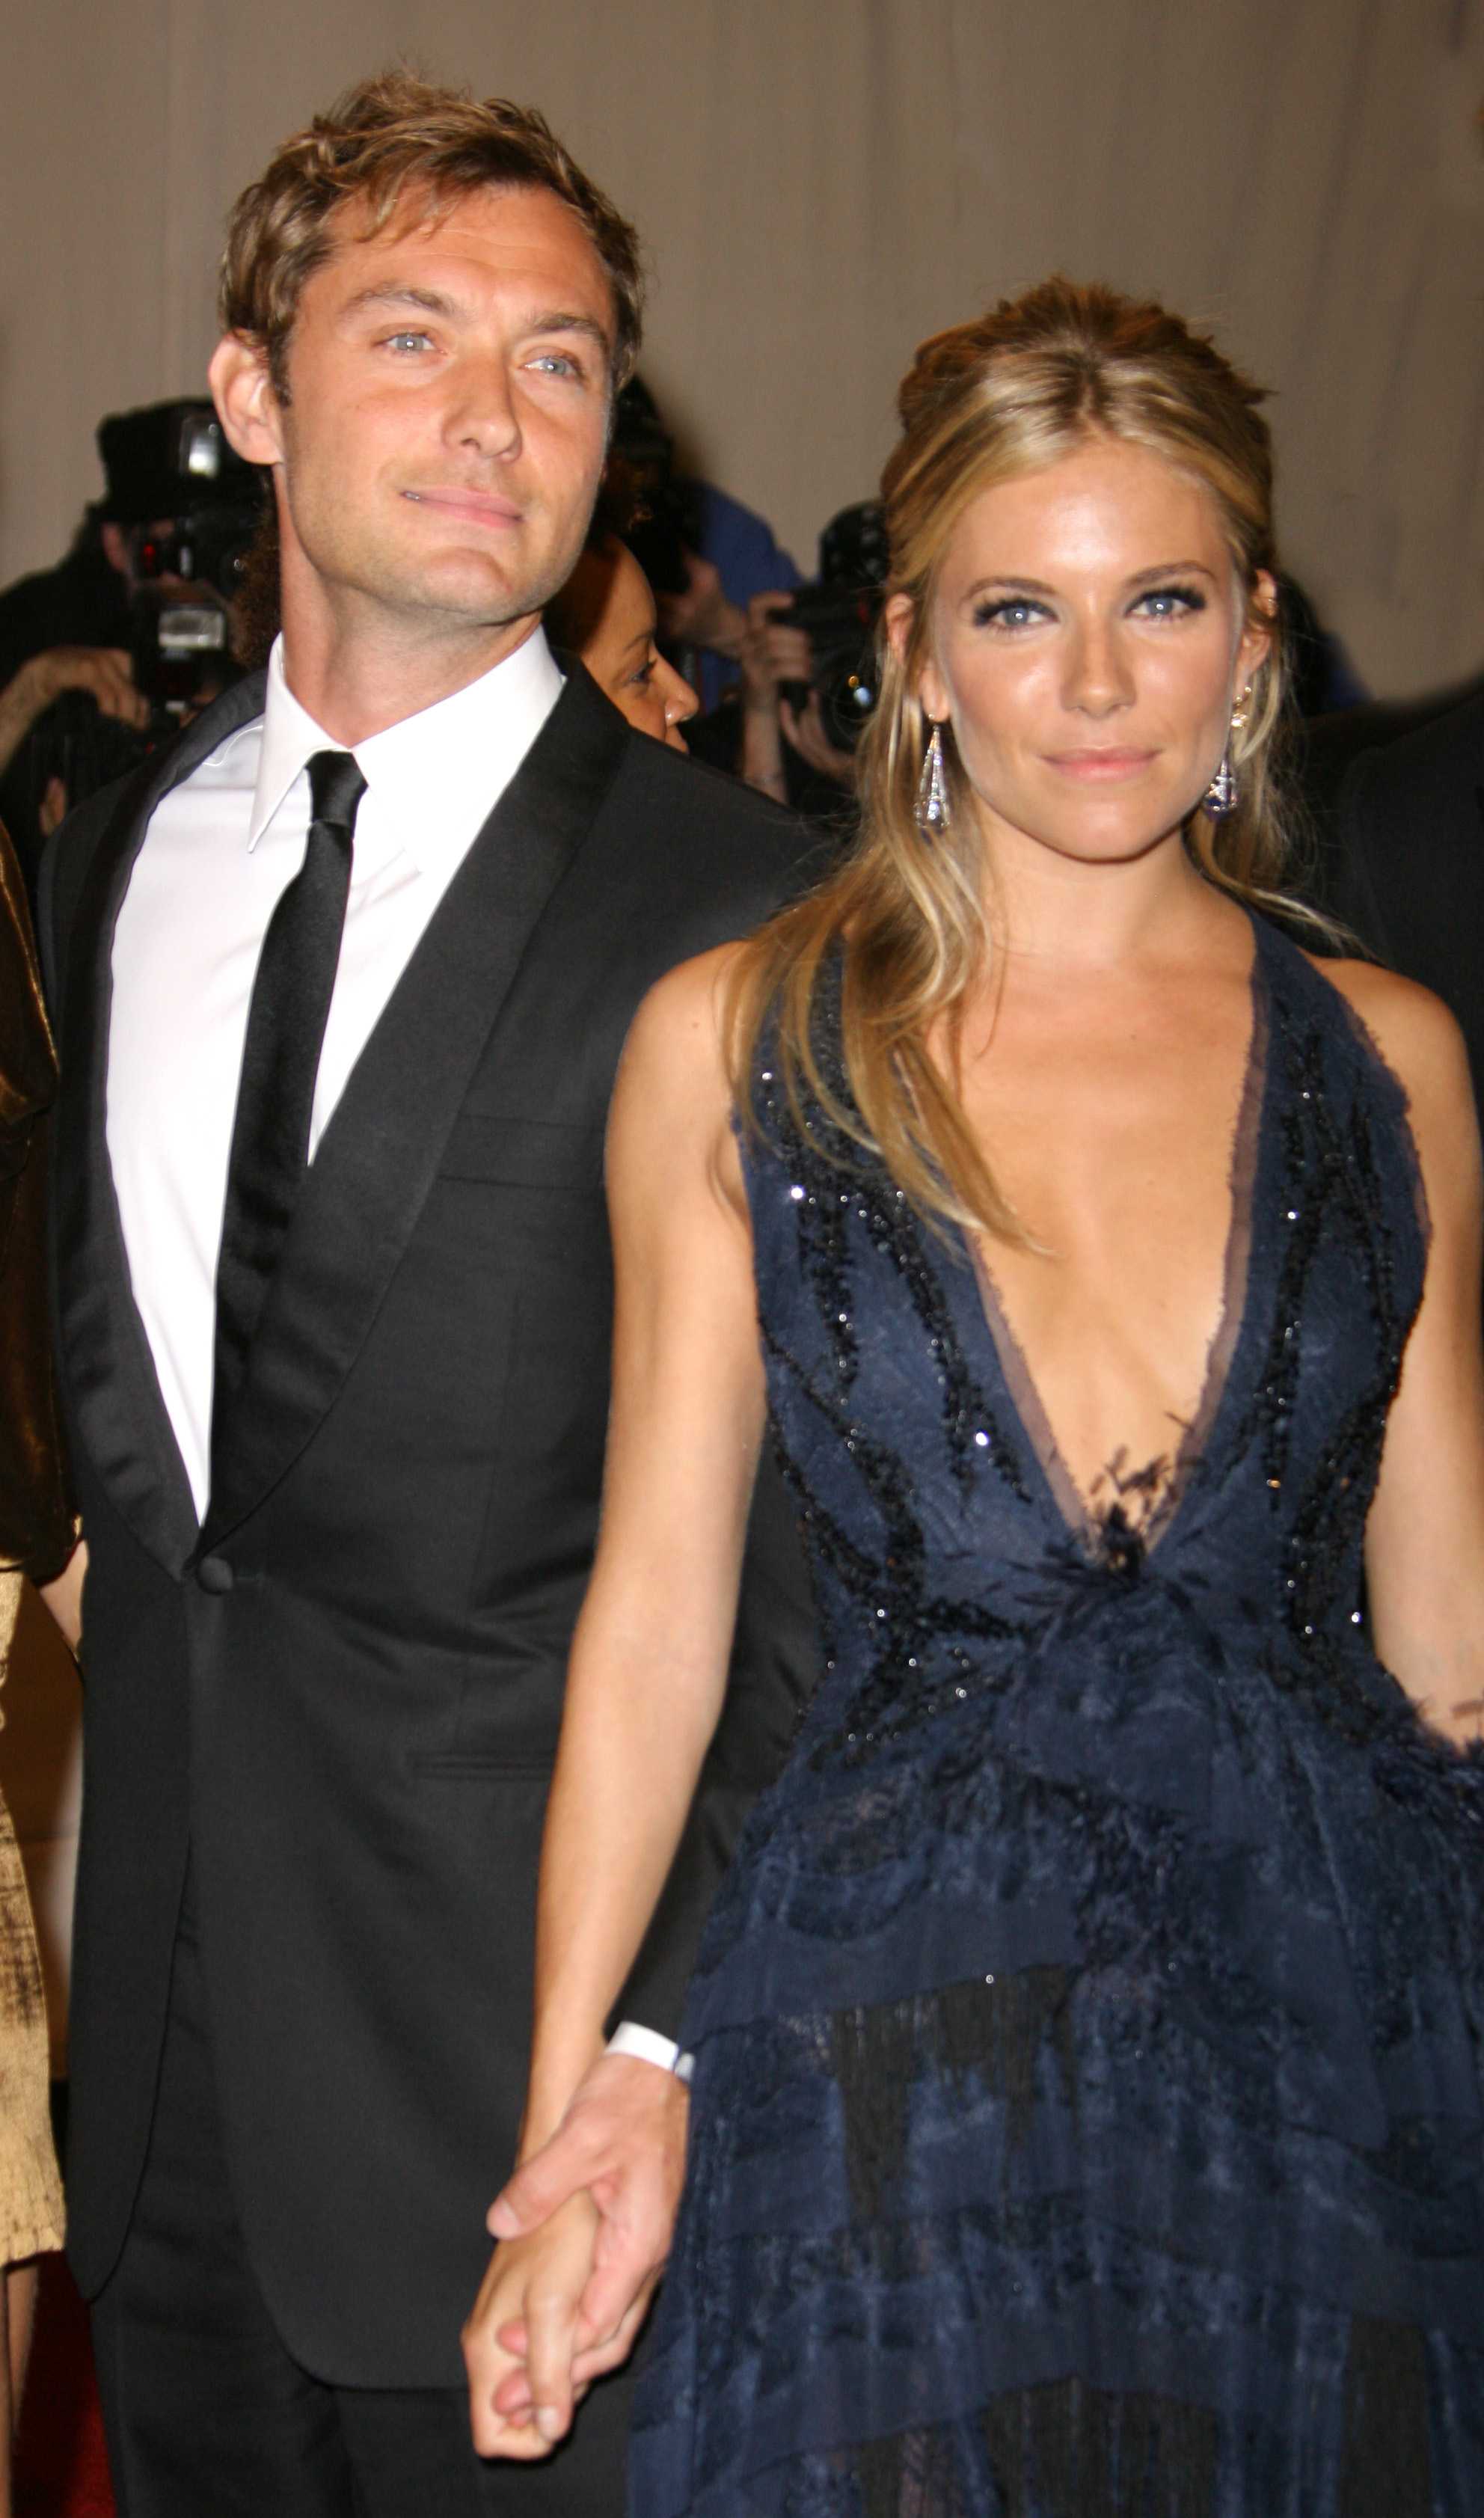 Jude Law and Sienna Miller attend the Costume Institute Gala Benefit American Woman: Fashioning a National Identity at the Metropolitan Museum of Art in New York City on May 3, 2010.